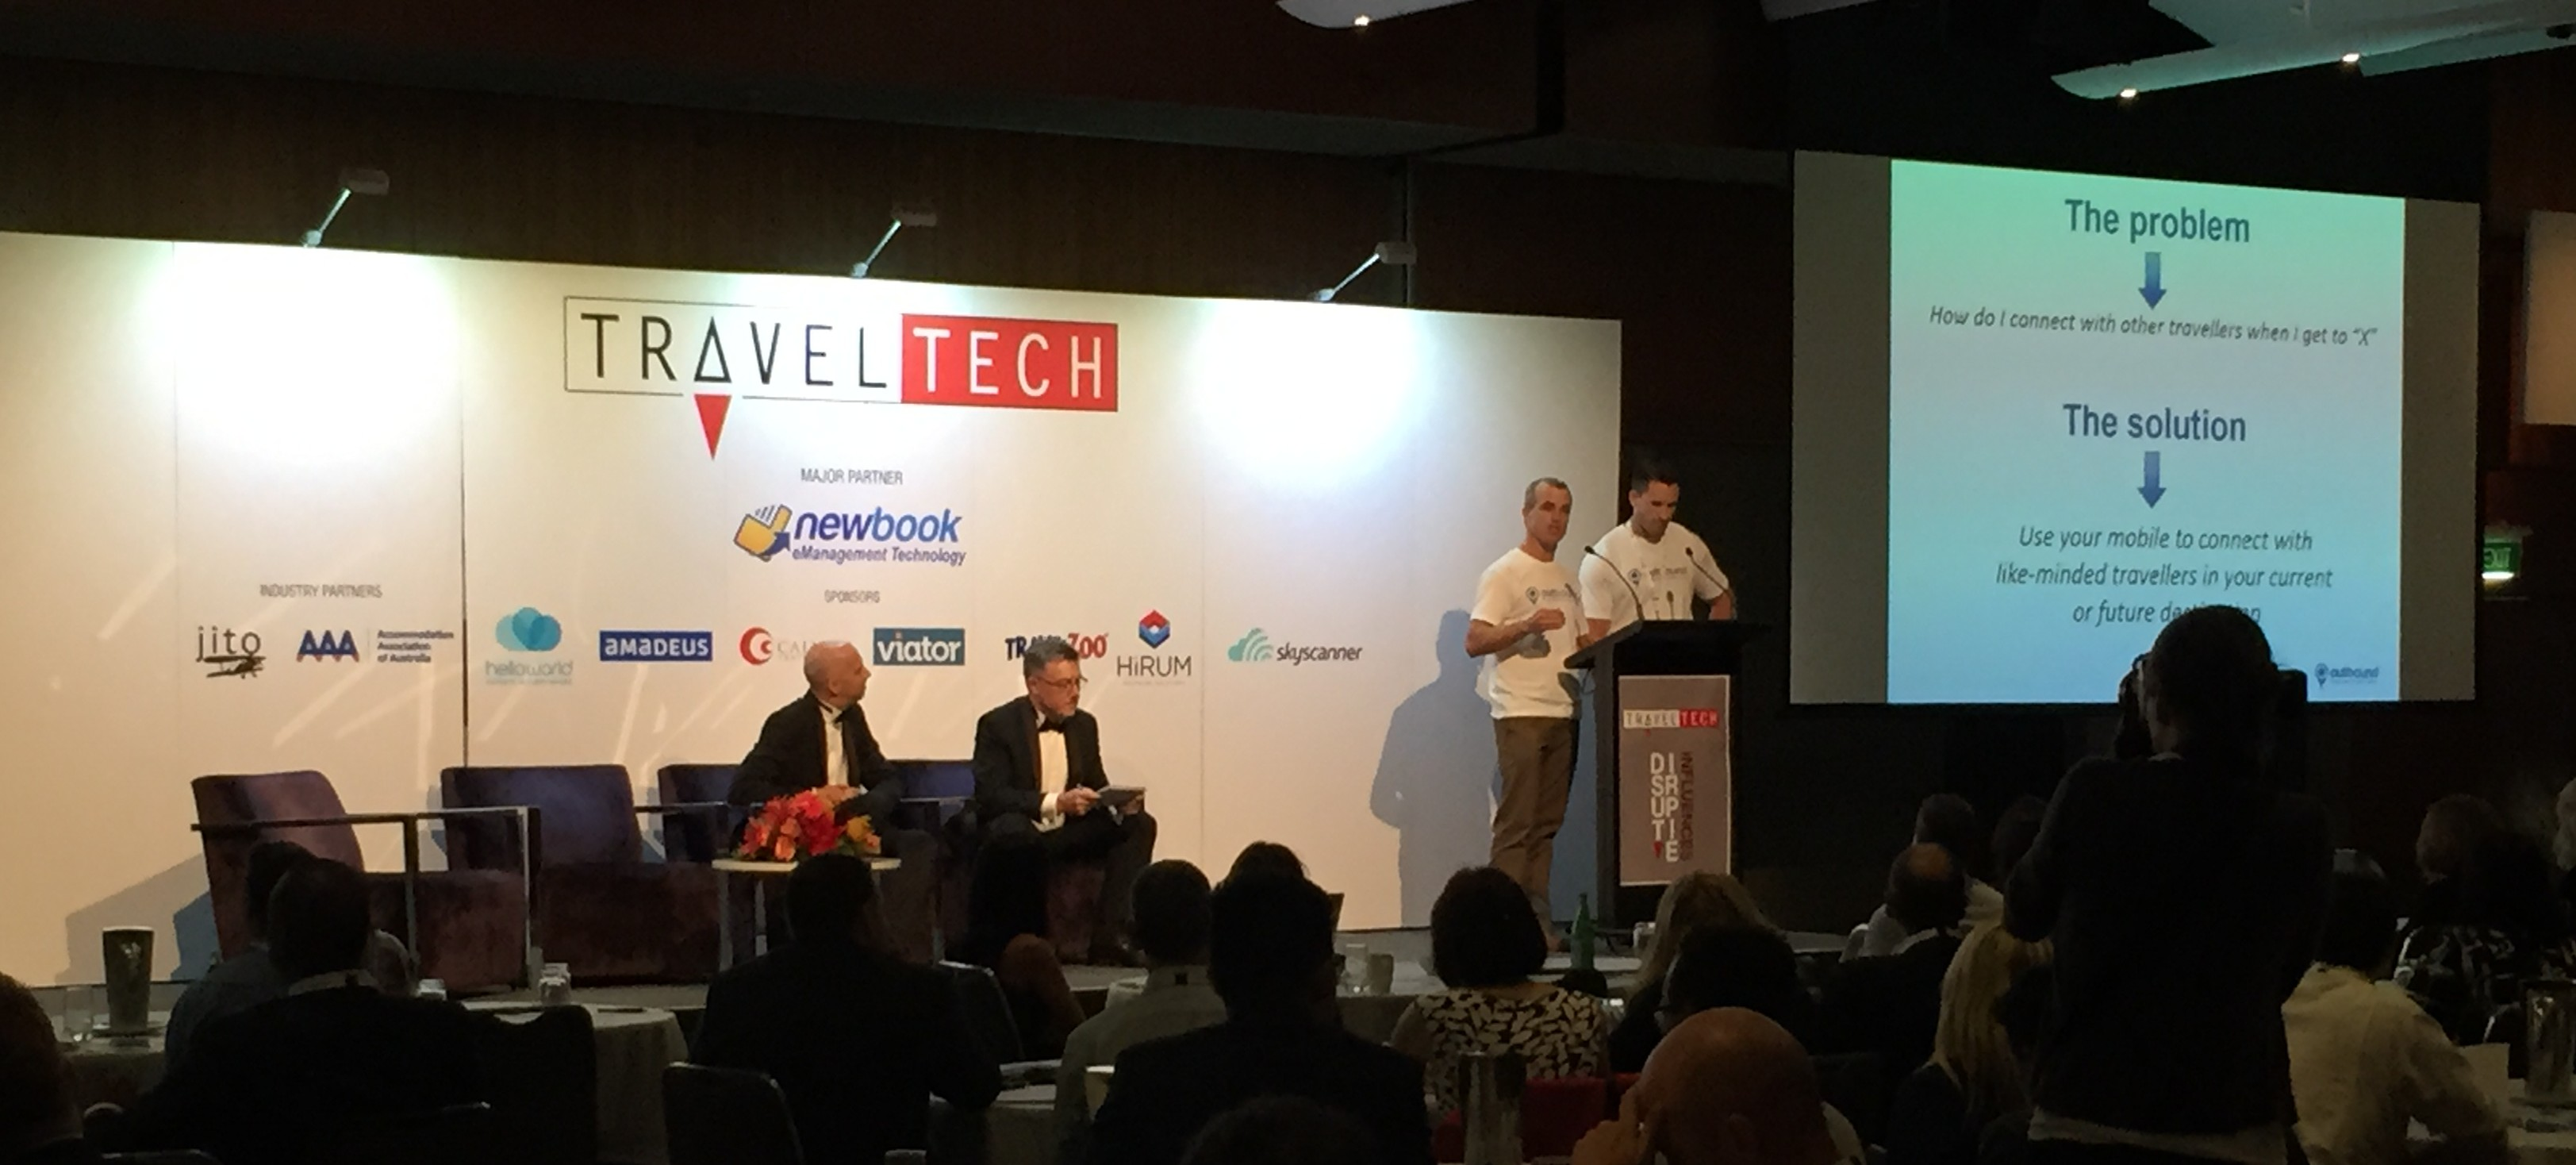 Outbound App at Travel Tech Conference Sydney